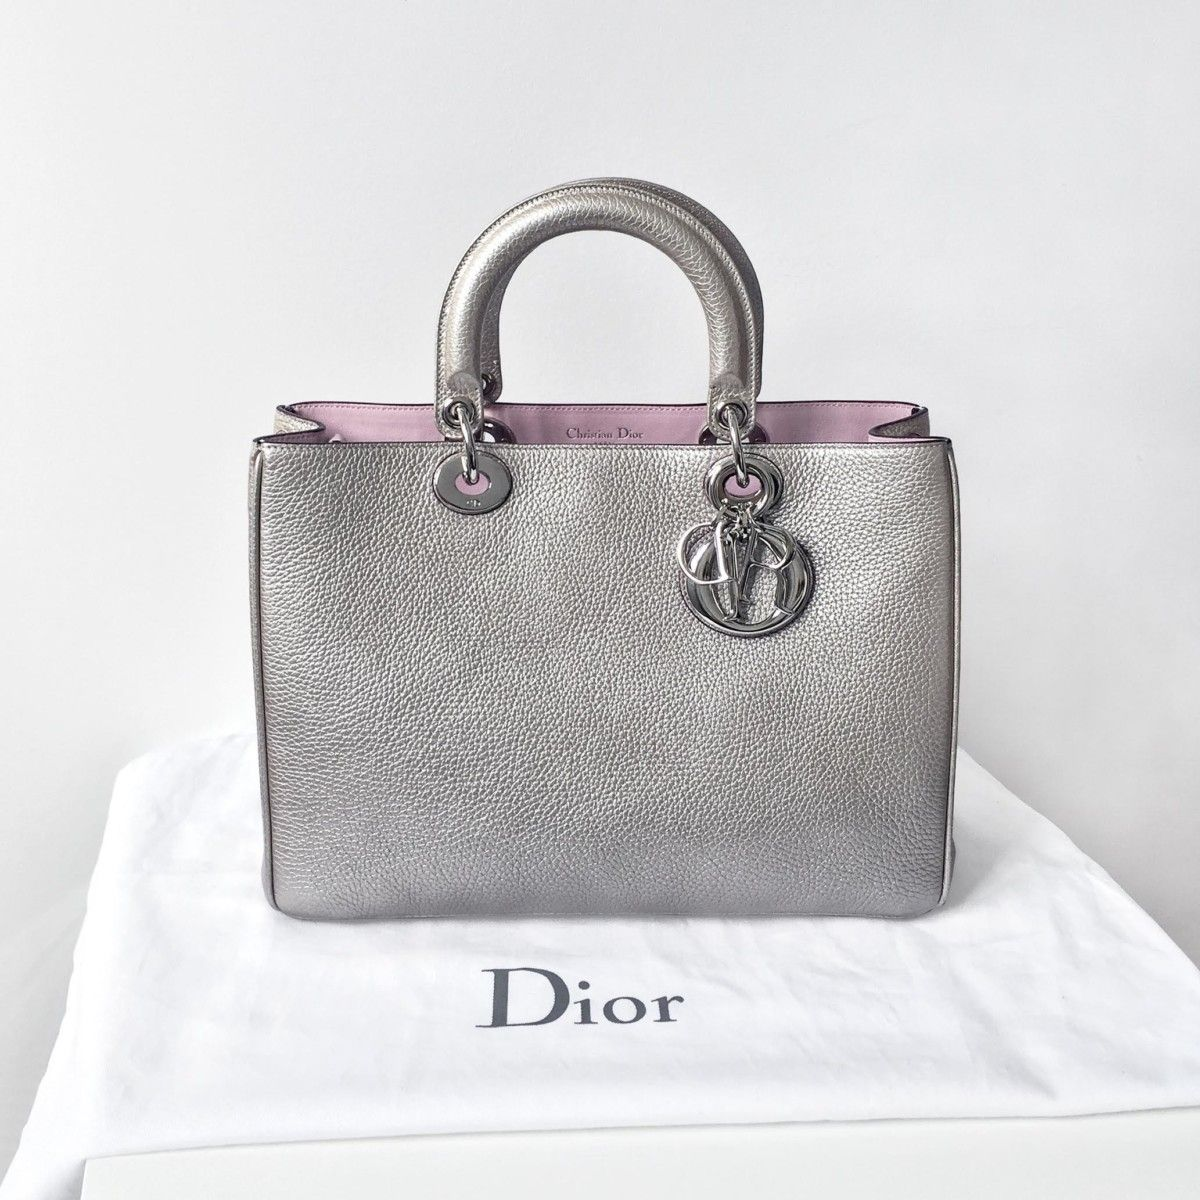 gucci bags canada. luxury consignment in canada, consignment, used handbags, chanel bag, gucci bags canada